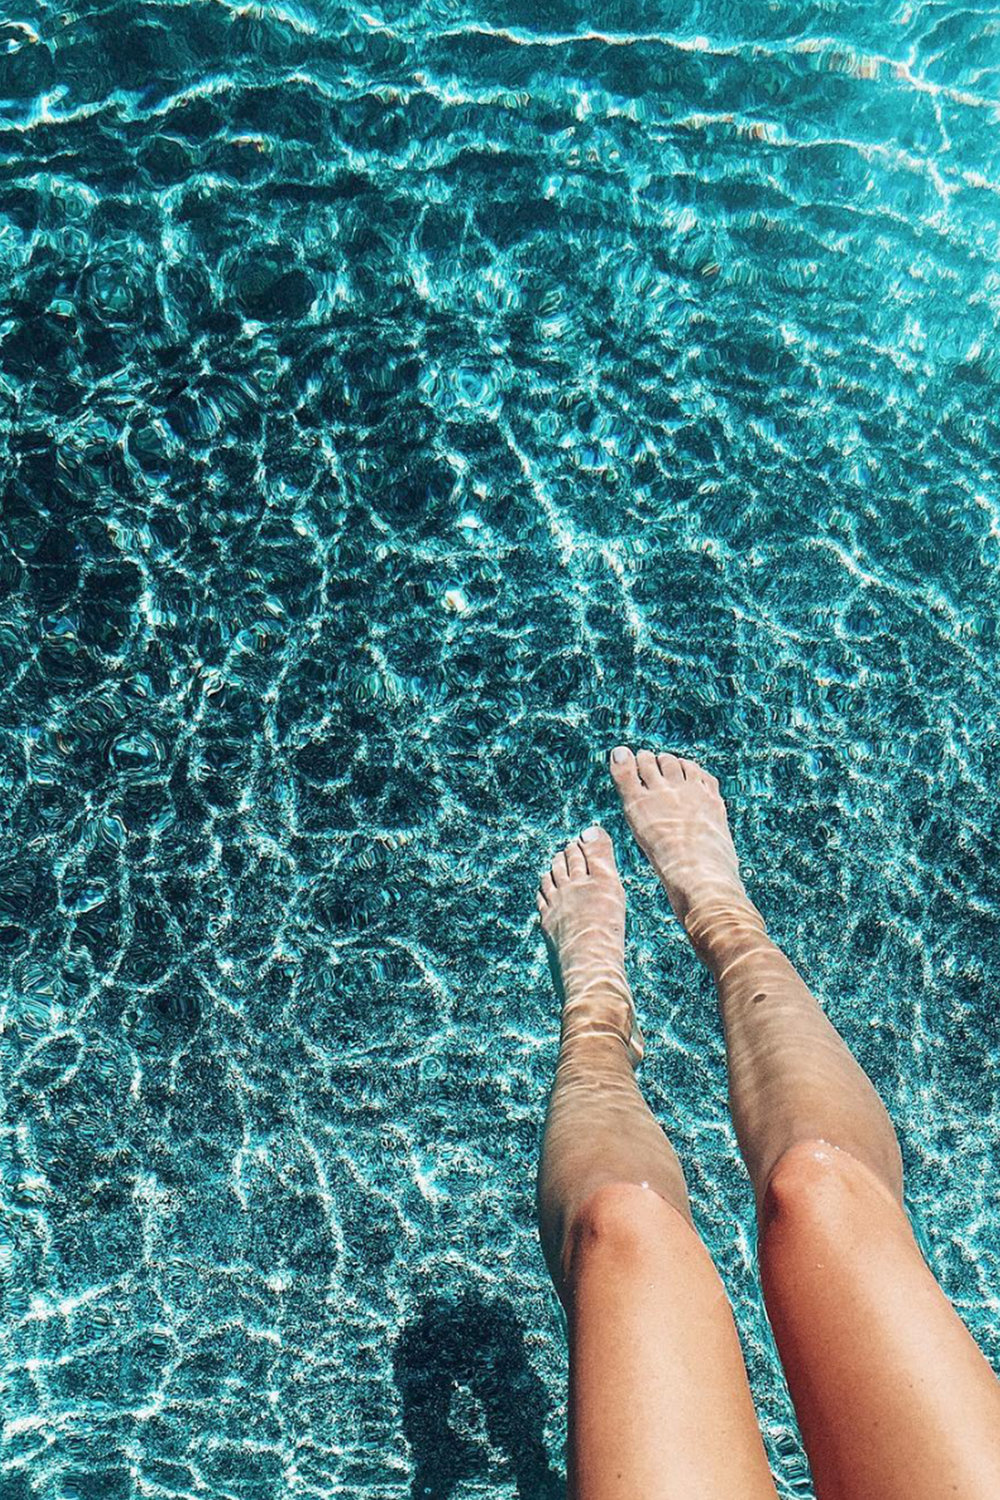 Summer Poolside / Tropical Water / Photography Texture / Instagram Photo Ideas / Kelly Fiance Creative